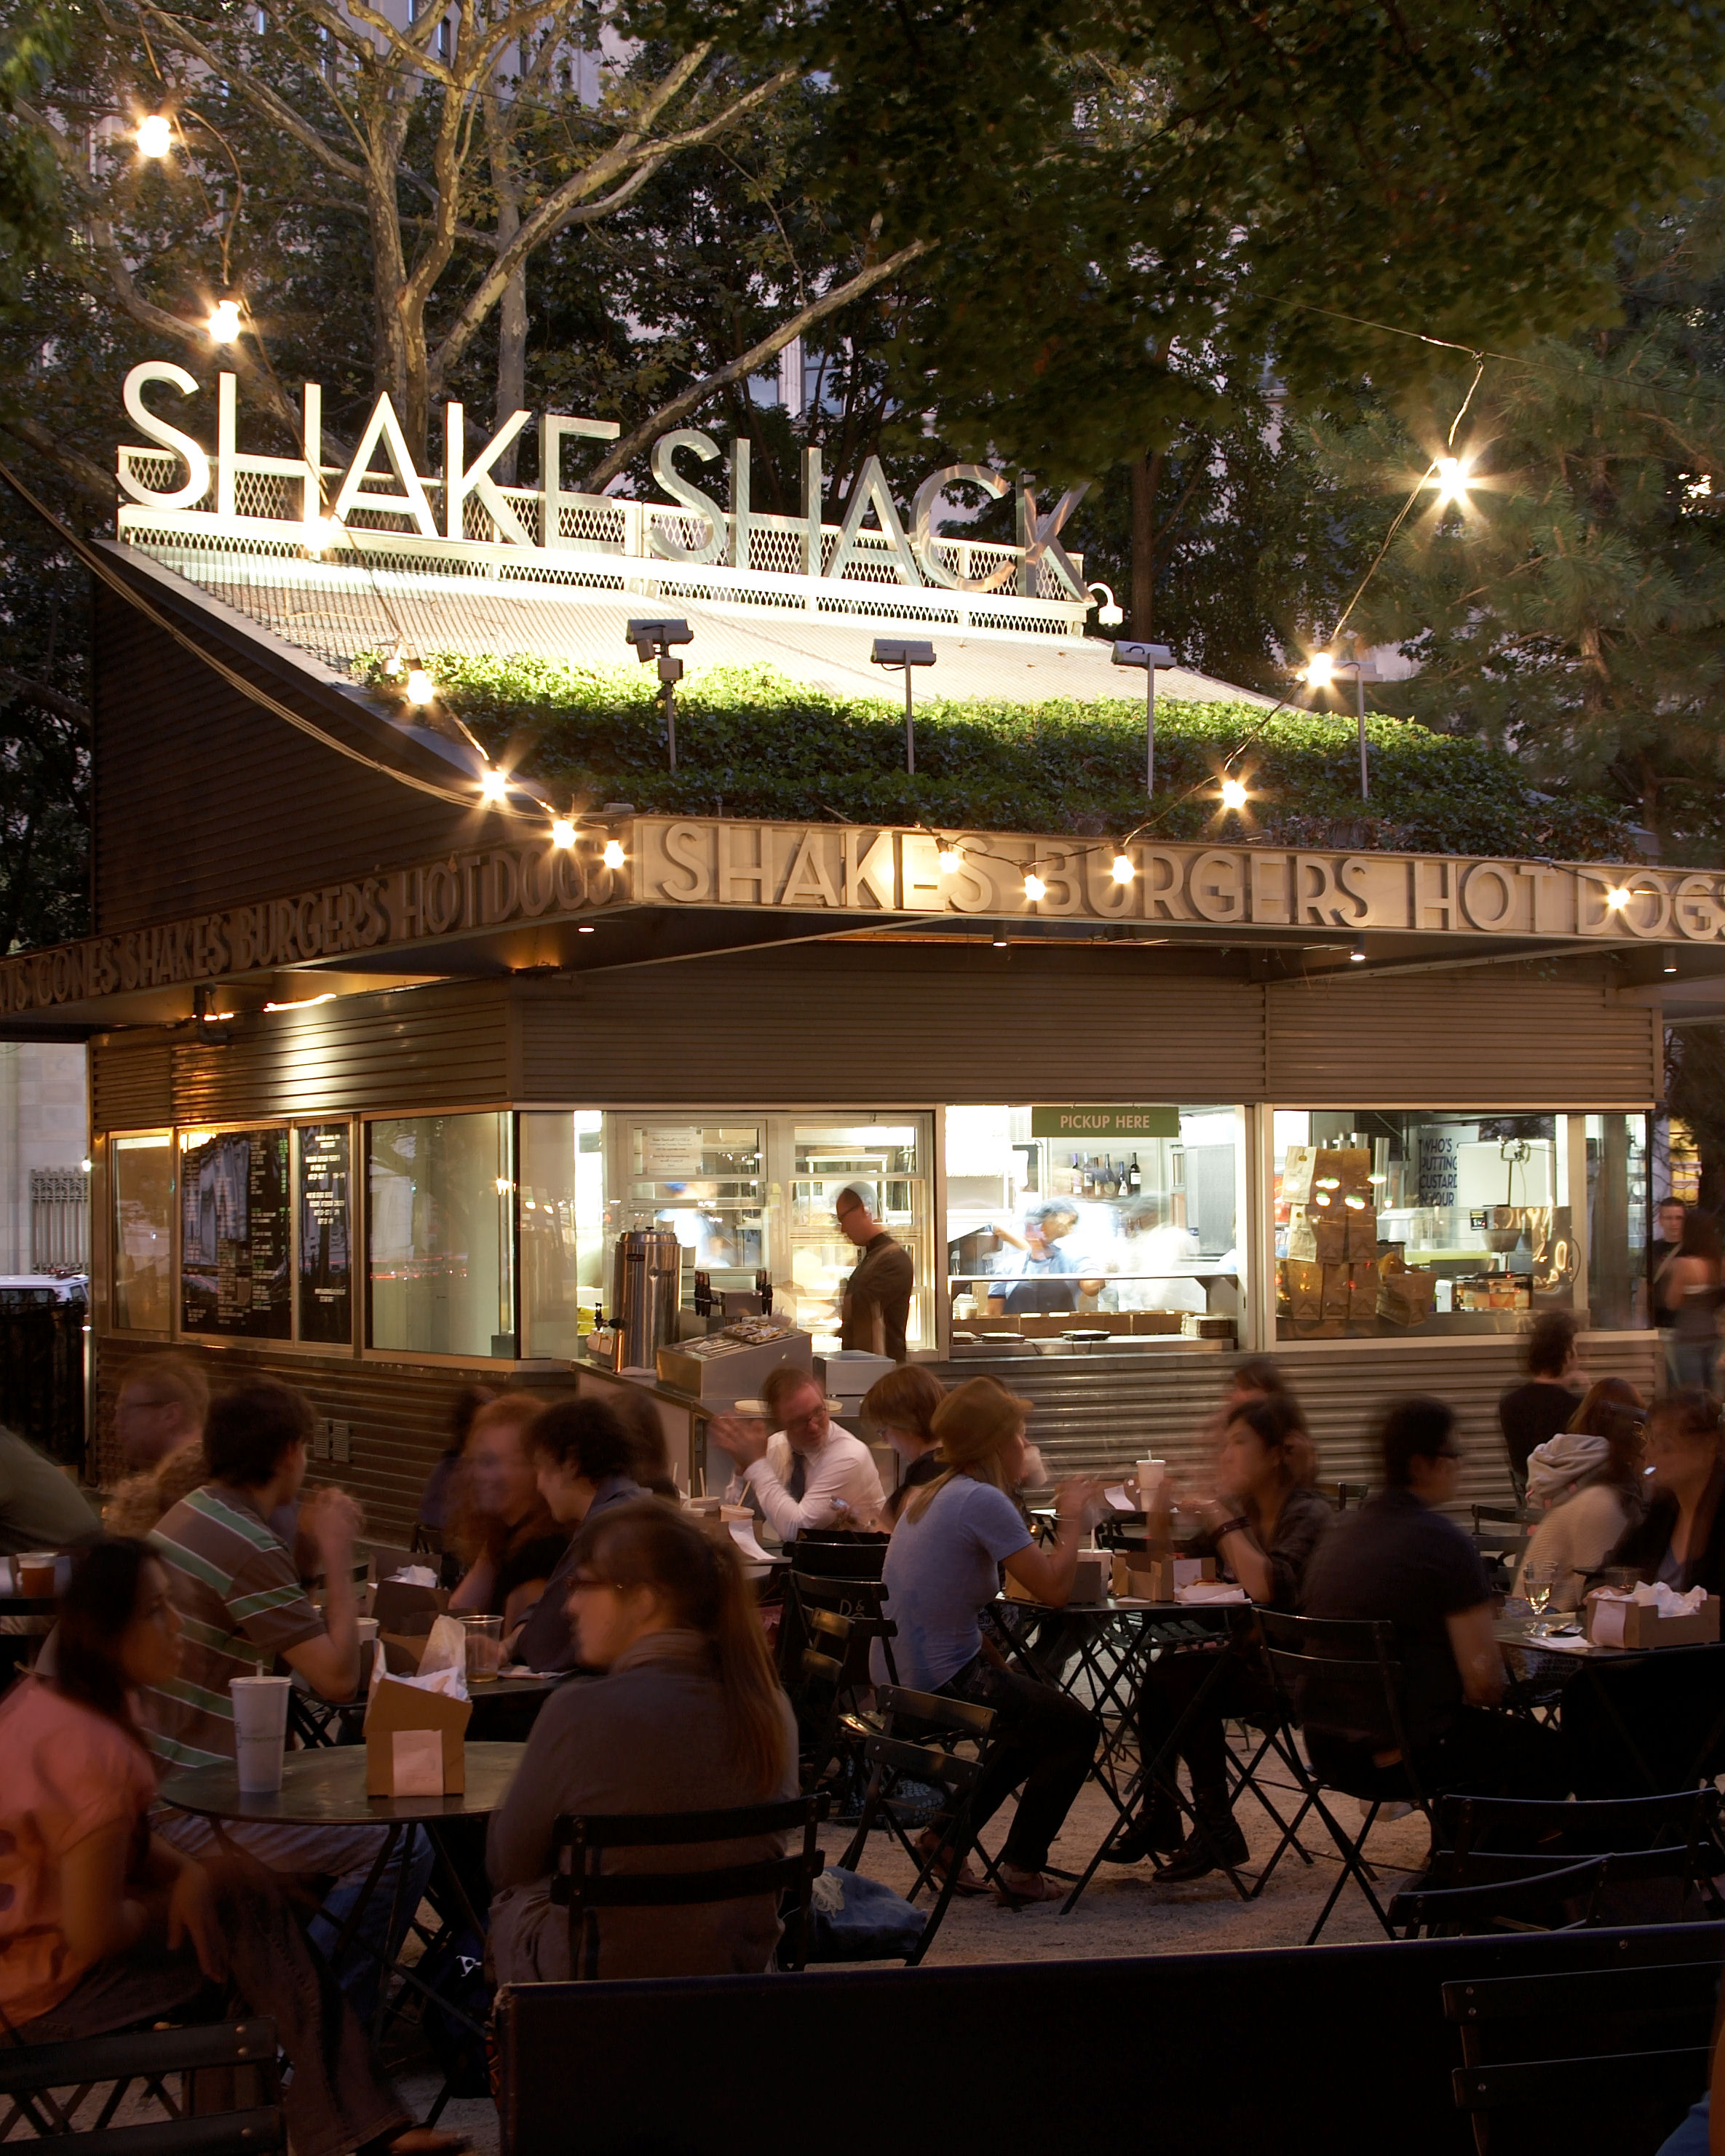 Madison Square Park Shake Shack. Photo by William Brinson